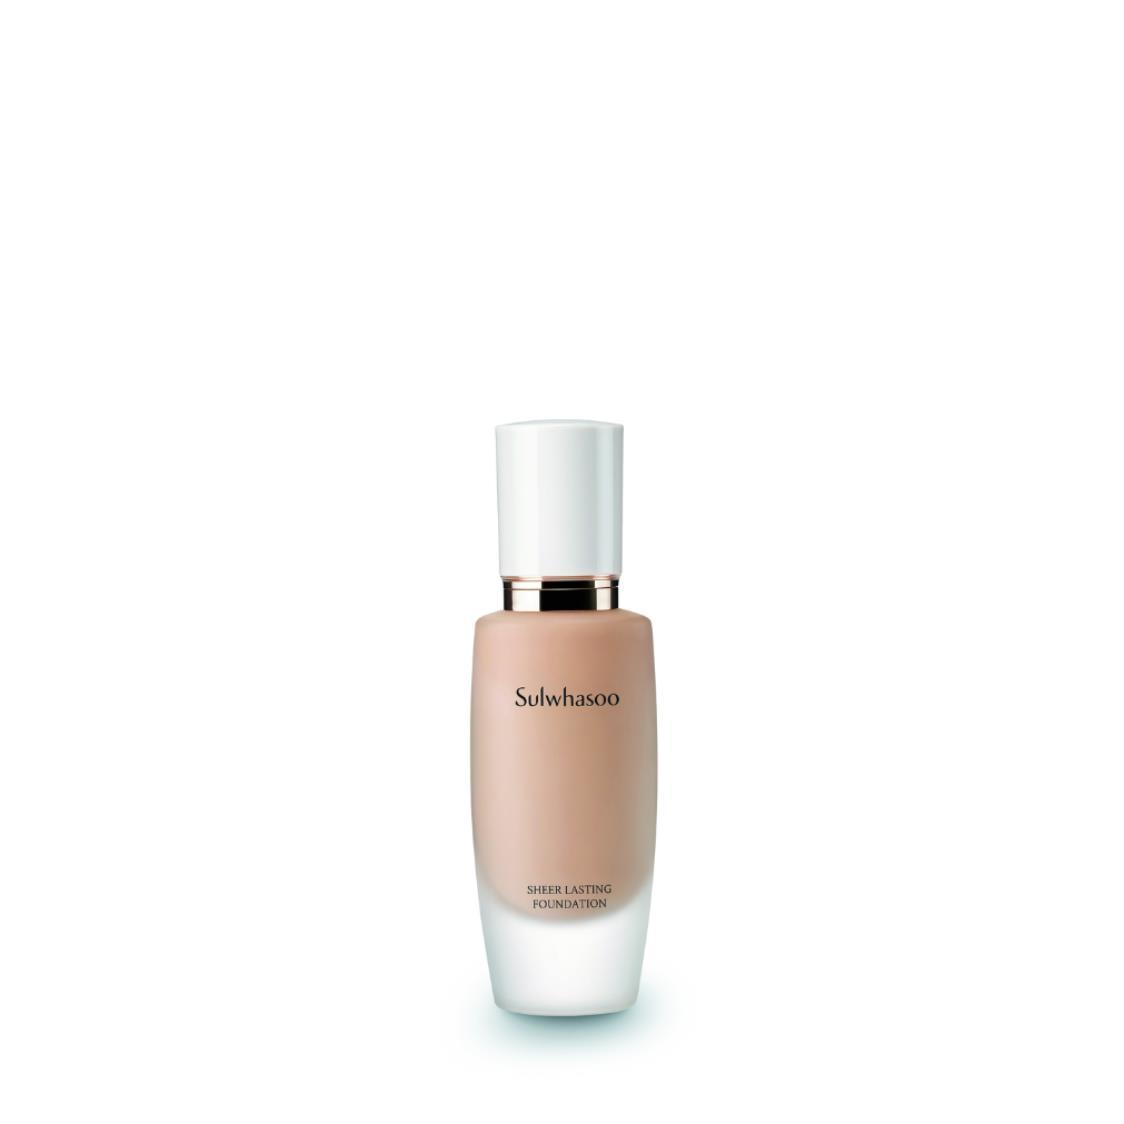 Sheer Lasting Foundation